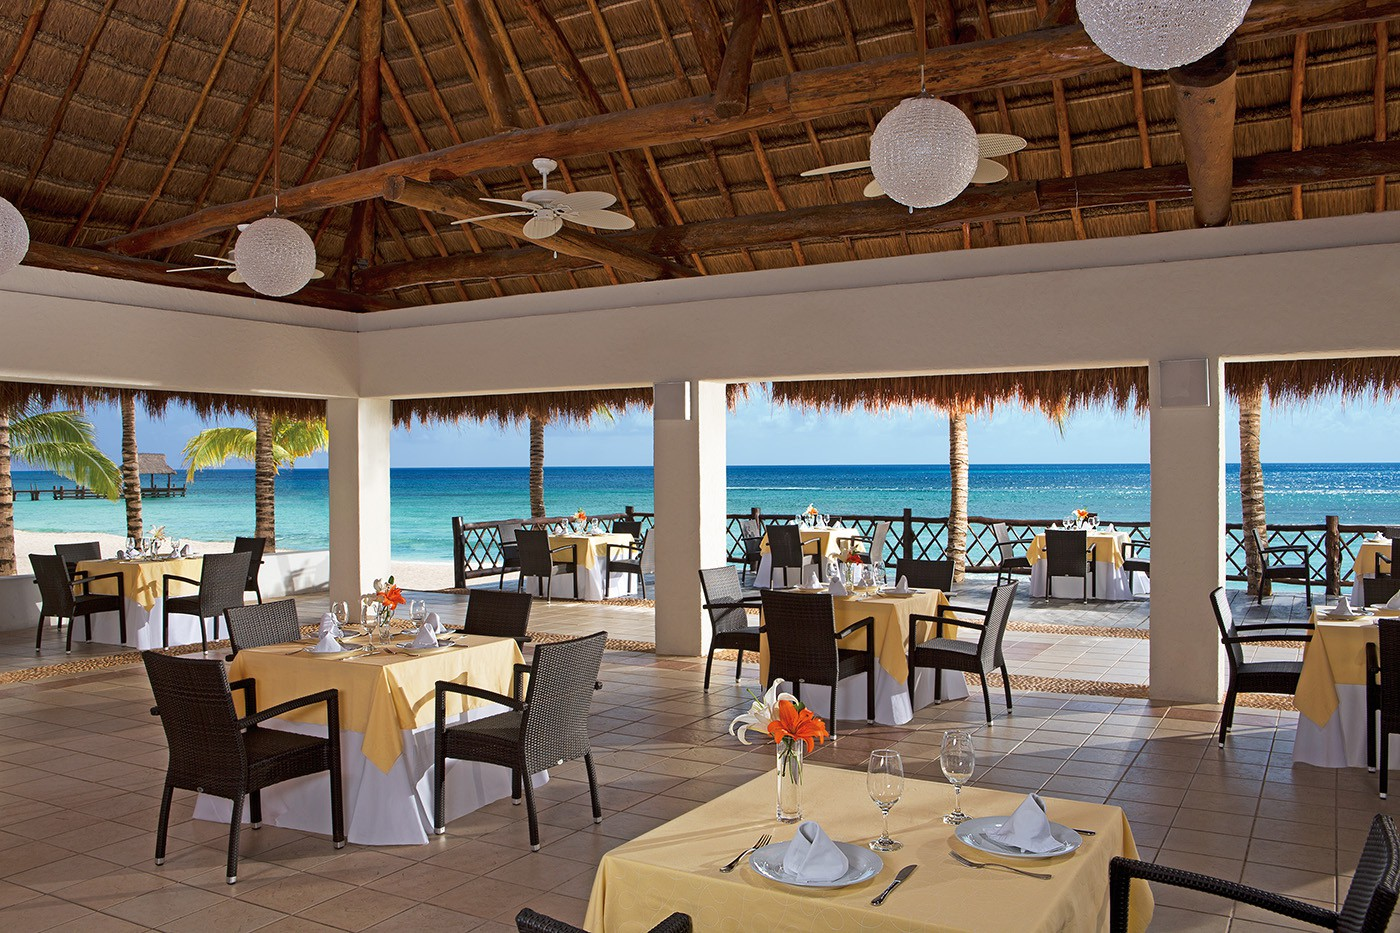 Dining at Secrets Aura Cozumel